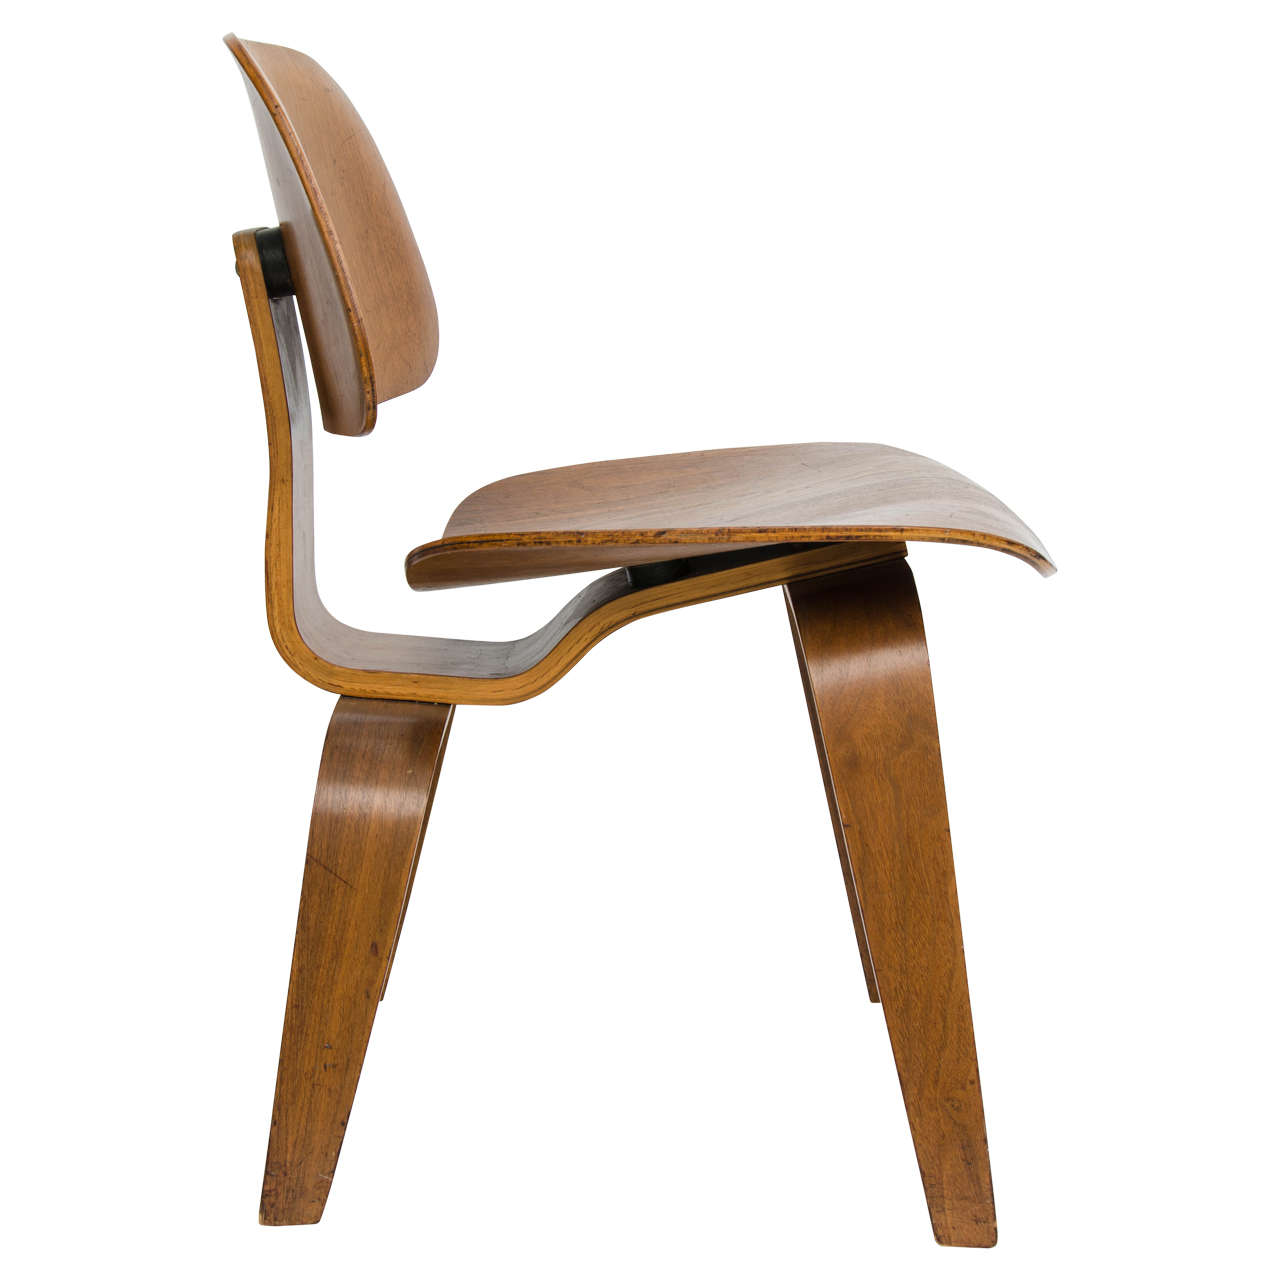 early dcw chair by charles eames for evans 1940s for sale at 1stdibs. Black Bedroom Furniture Sets. Home Design Ideas